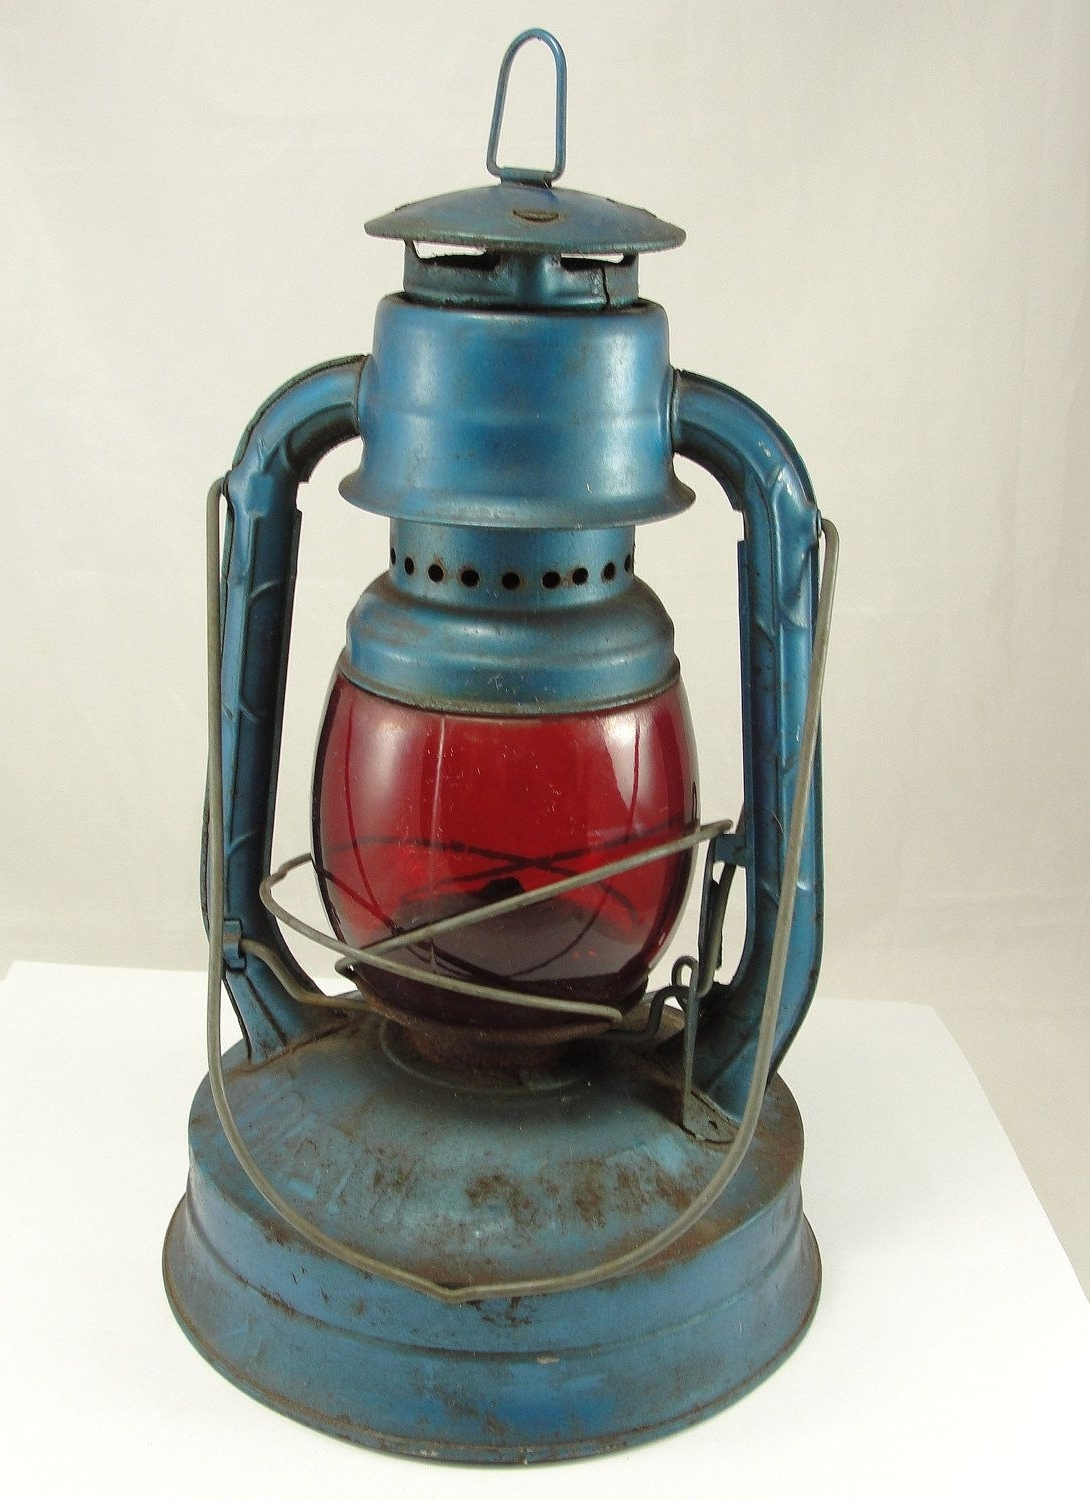 Vintage Dietz Lantern Railroad Intended For Outdoor Railroad Lanterns (View 15 of 20)